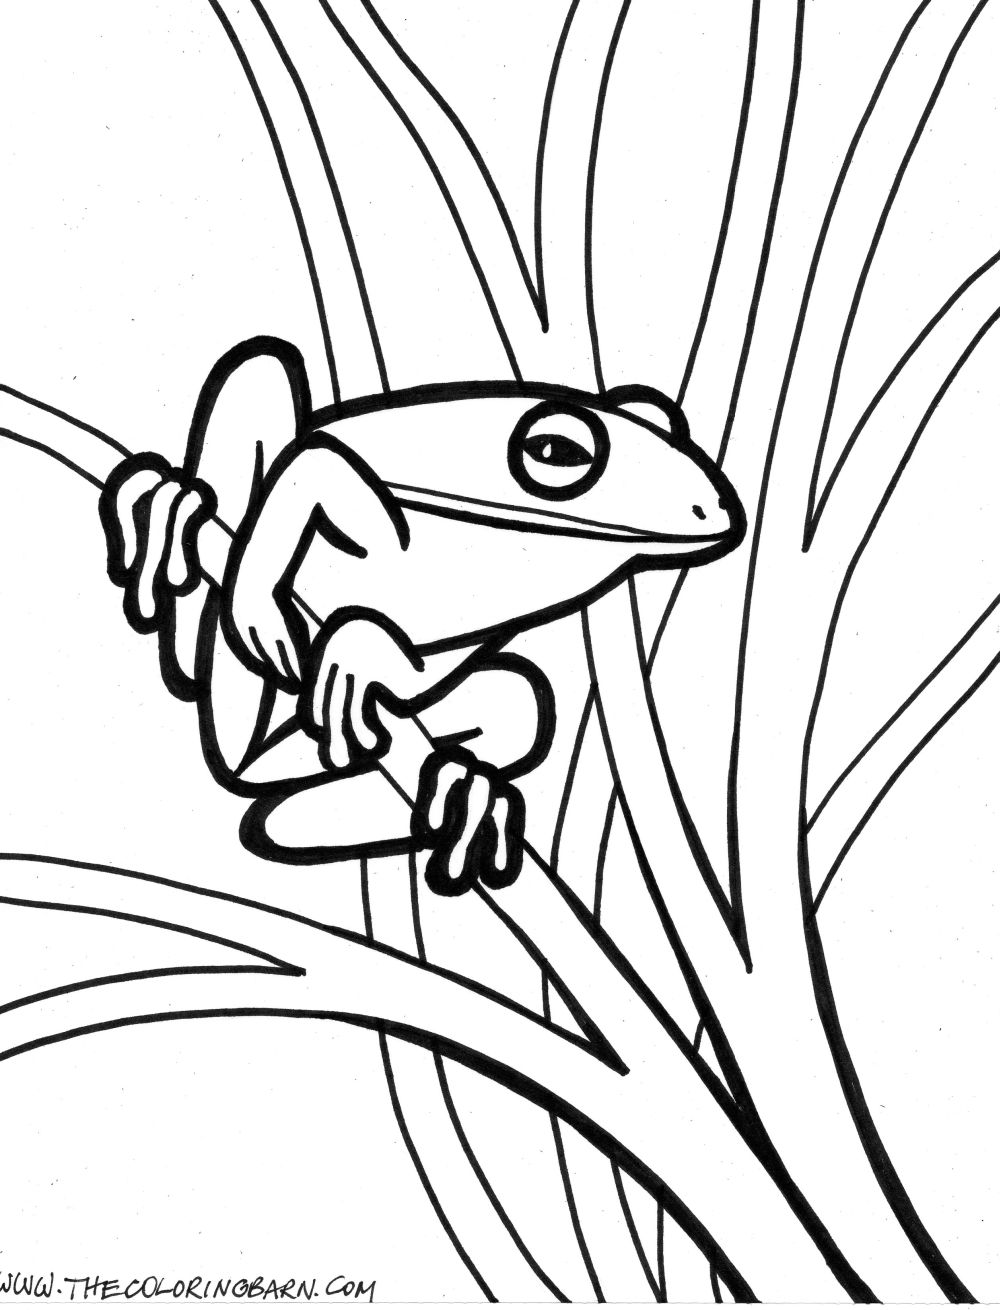 Realistic Frog Drawing at GetDrawings.com | Free for ...